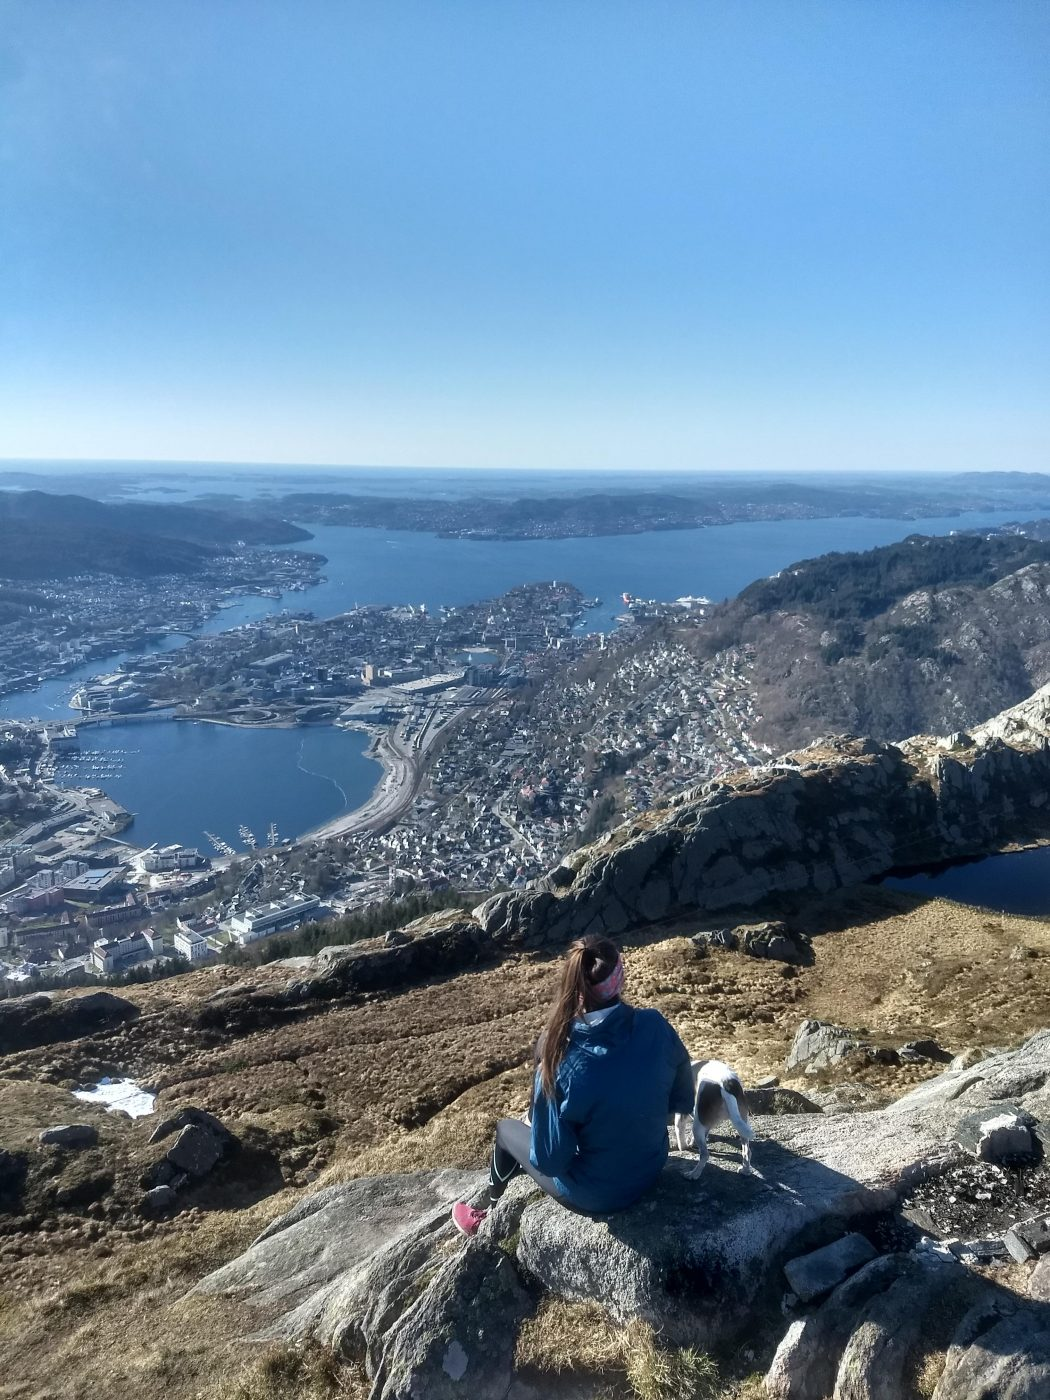 Mount Ulriken Bergen Beautiful View over the city